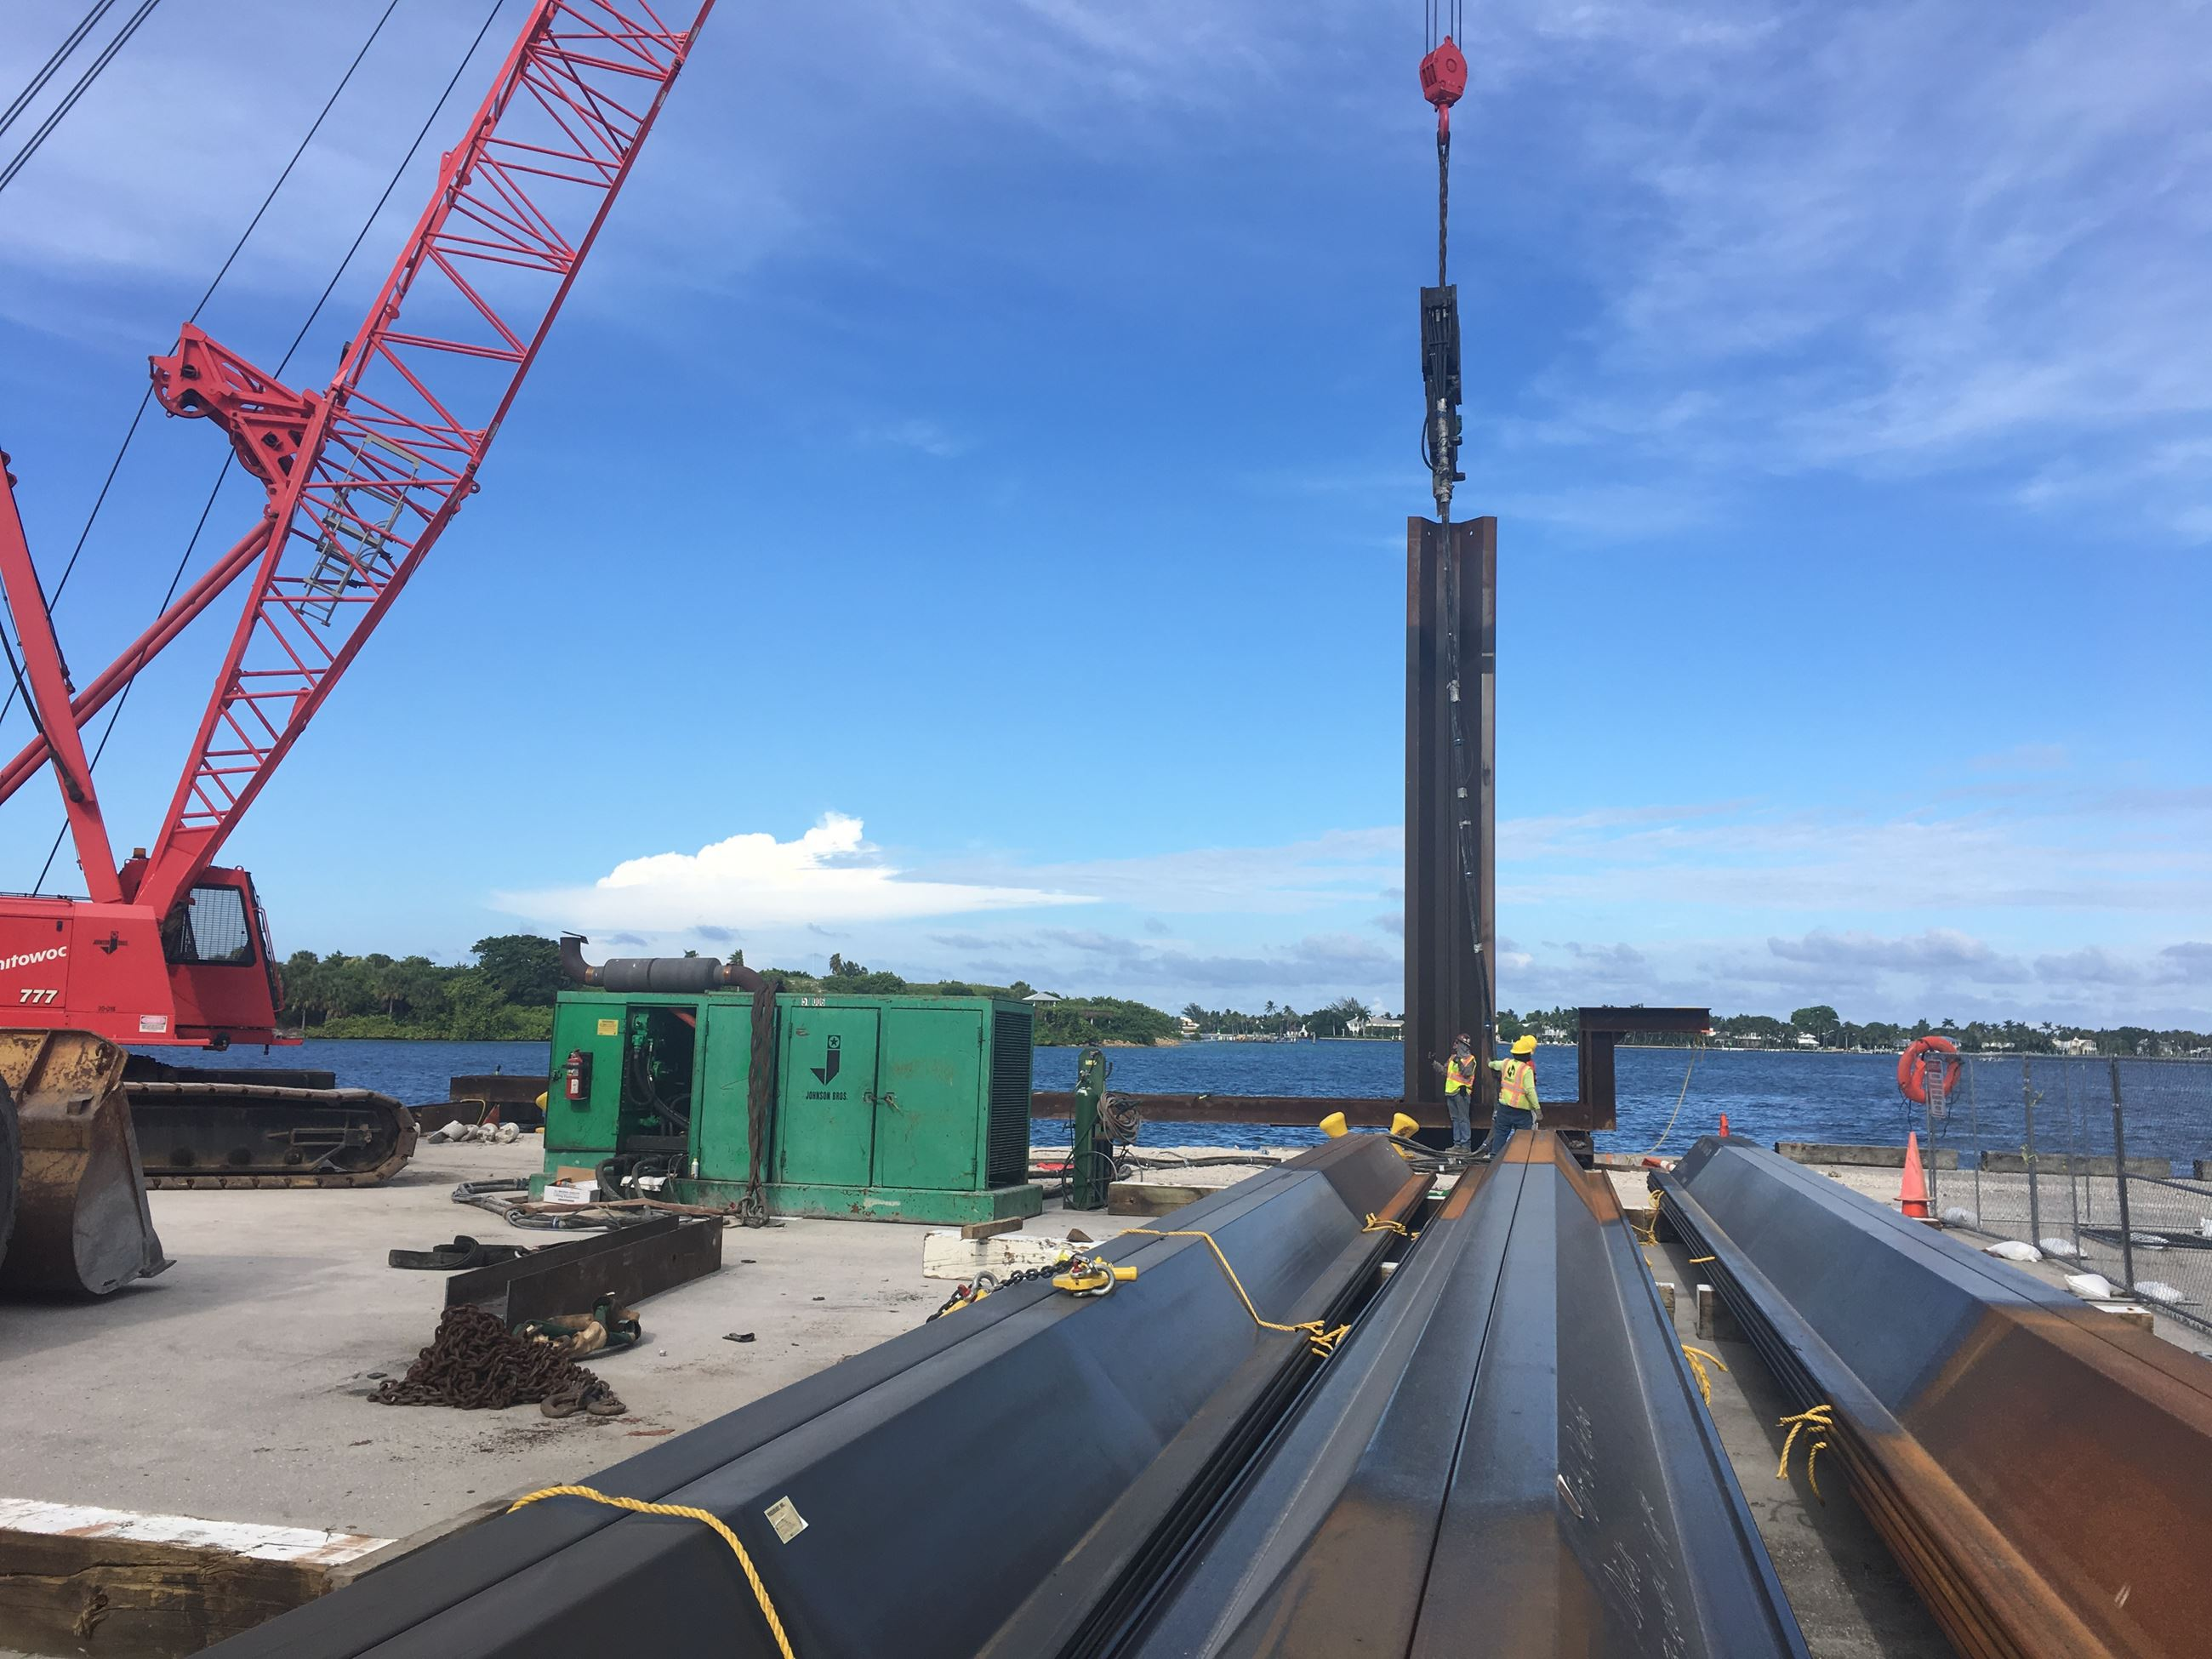 Installment of new steel sheet piles begin